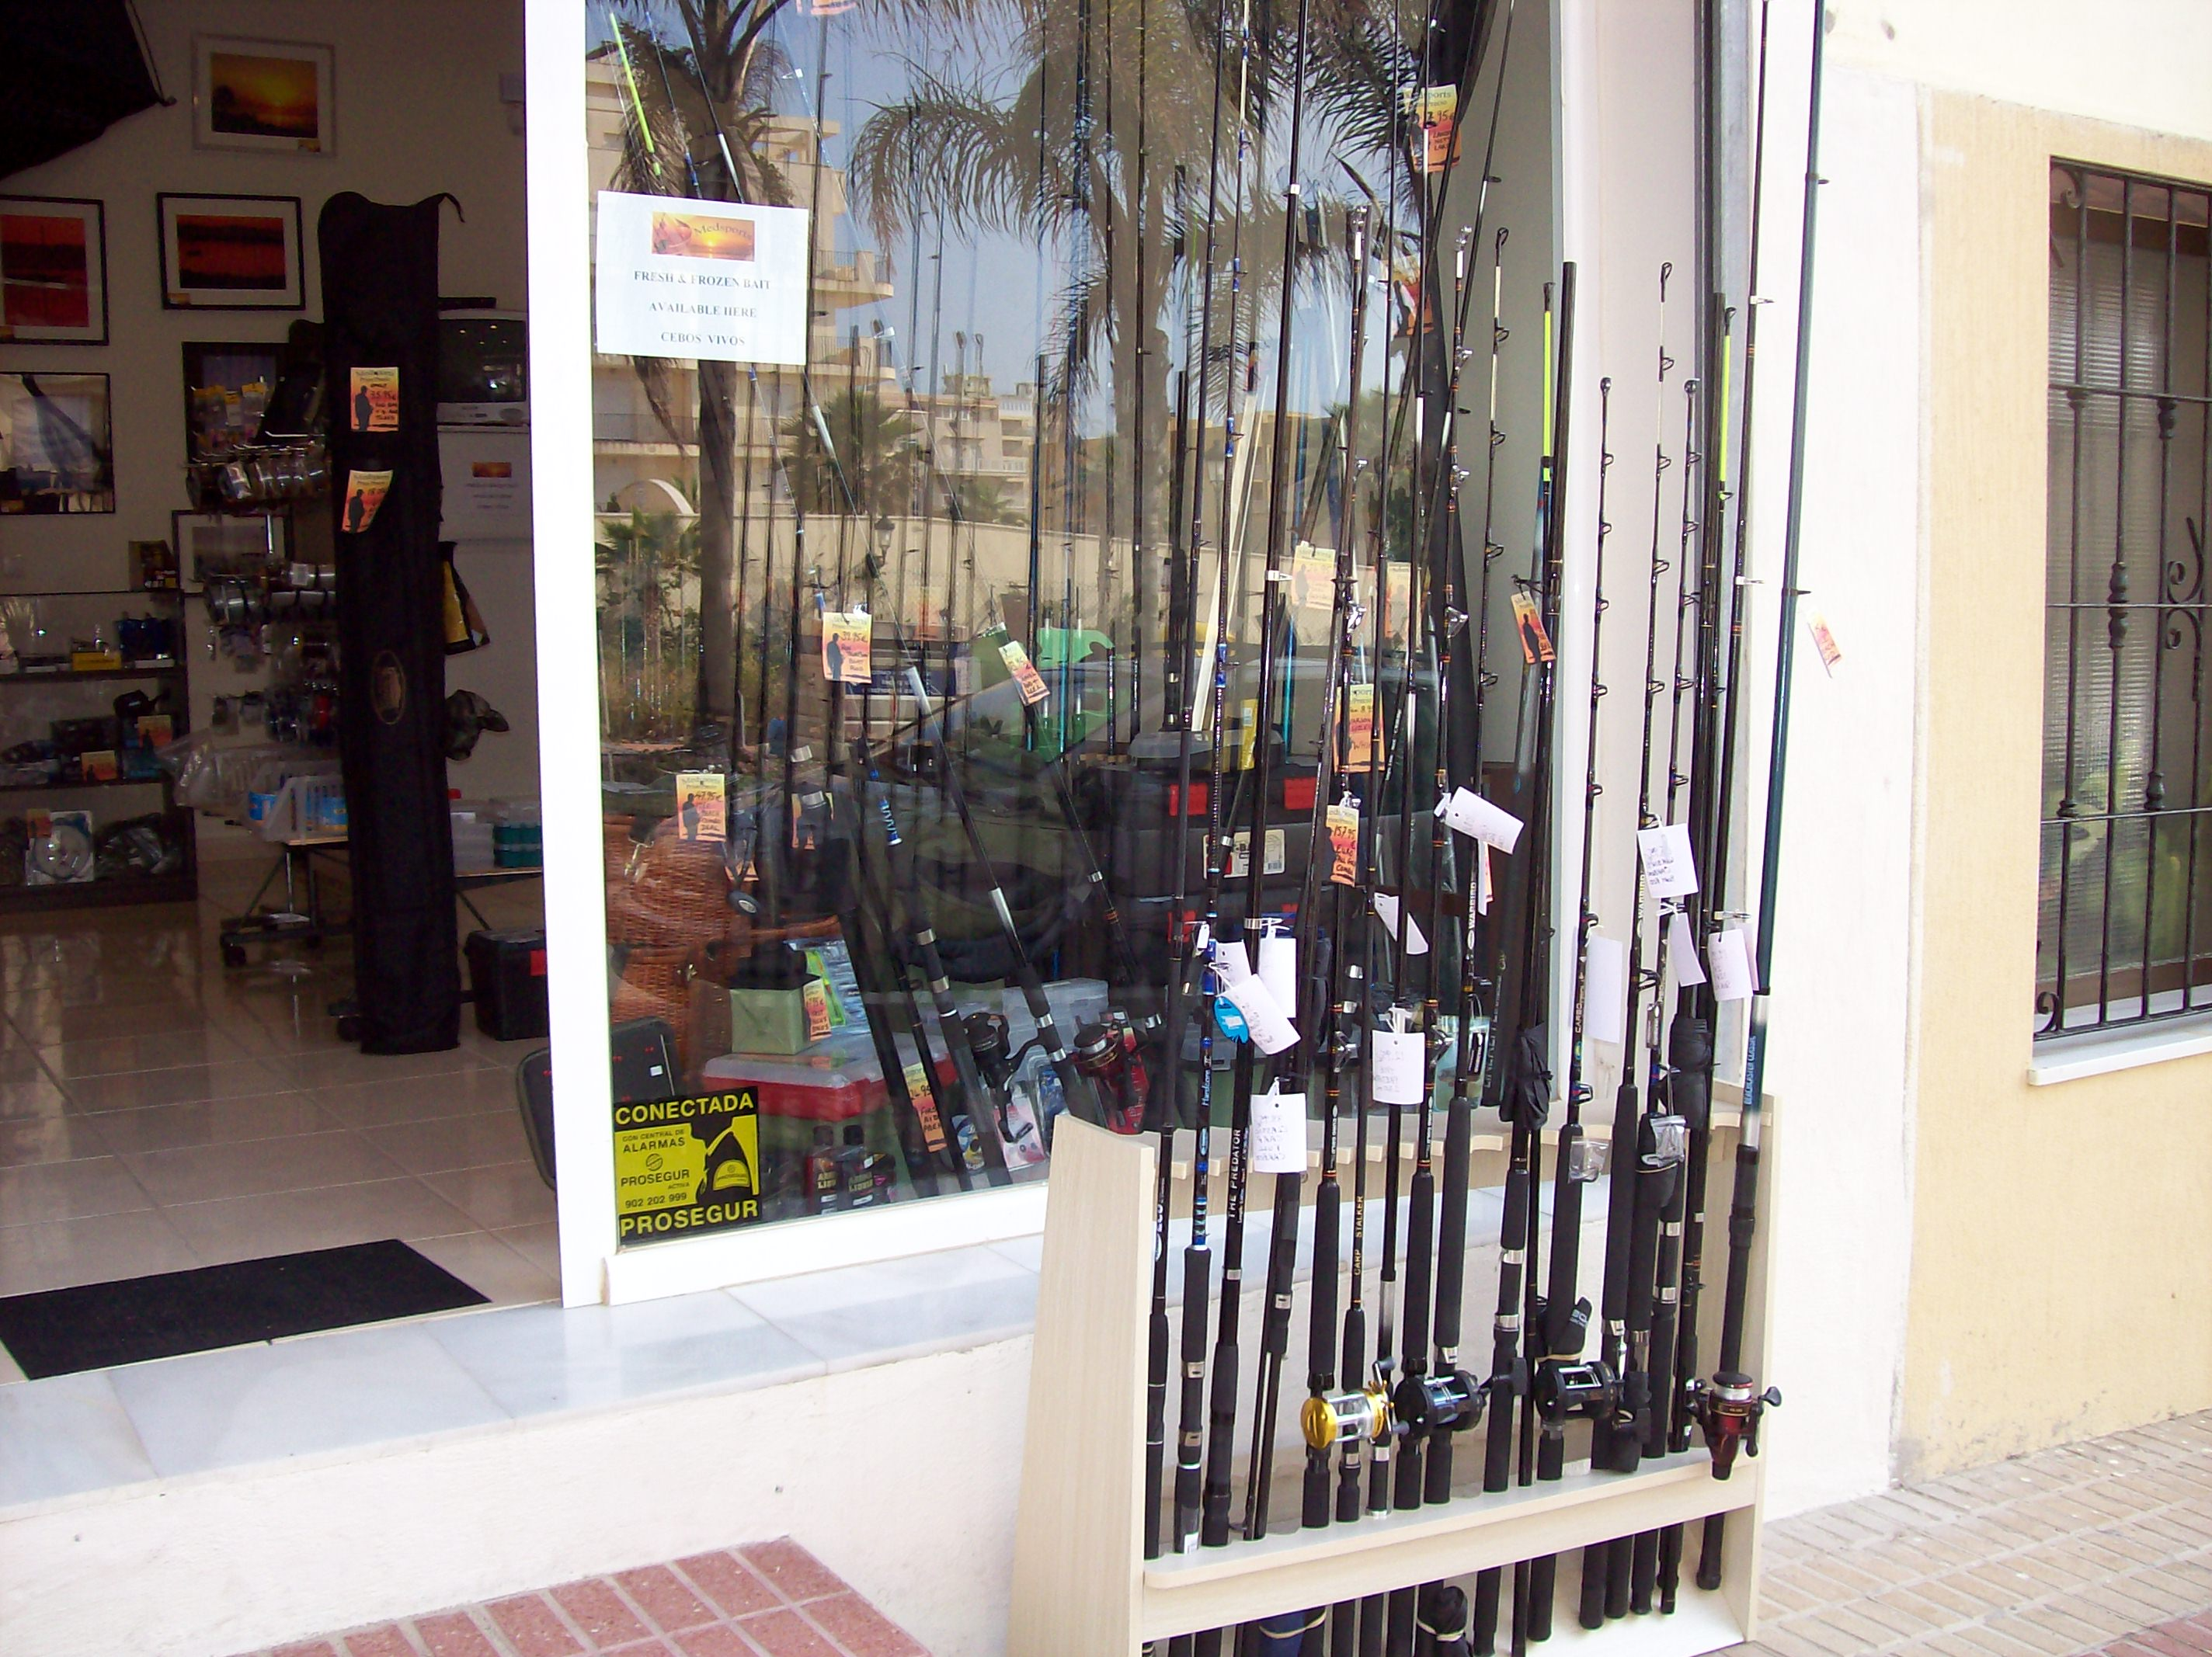 Fishing tackle store for sale f 2017 for Fishing supply store